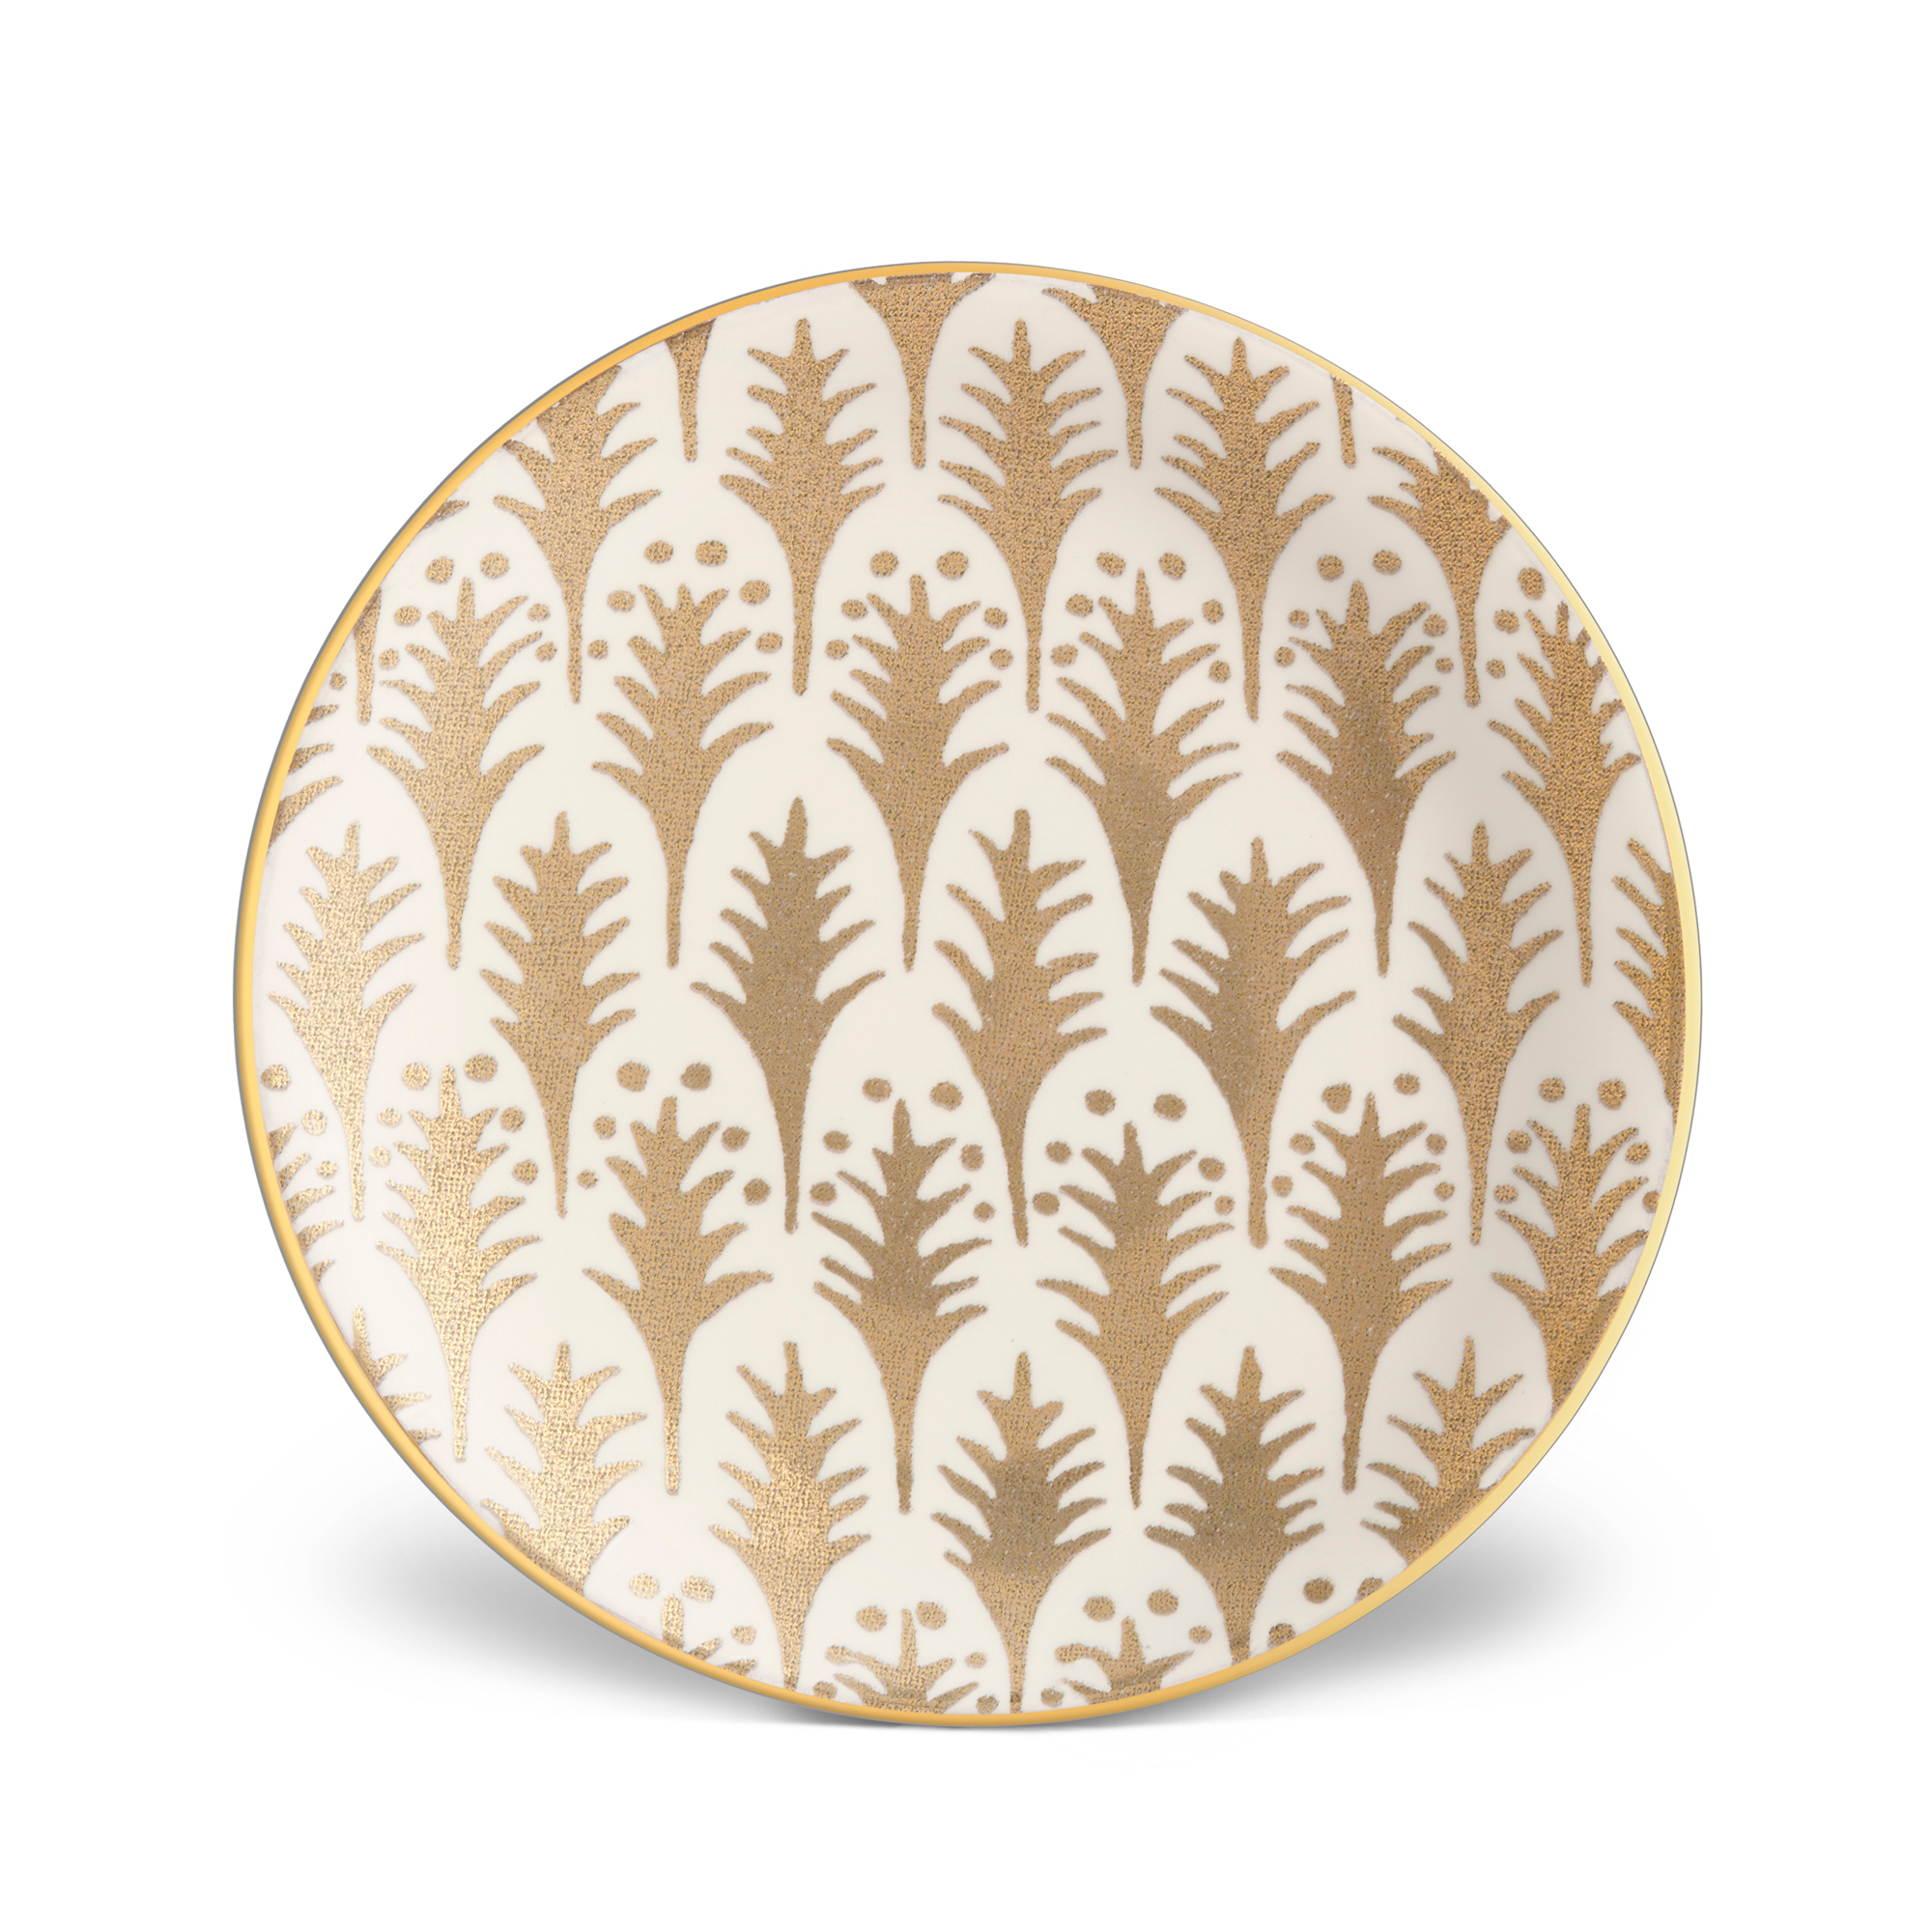 L'Objet Fortuny Piumette White Canape Plates, Set of 4